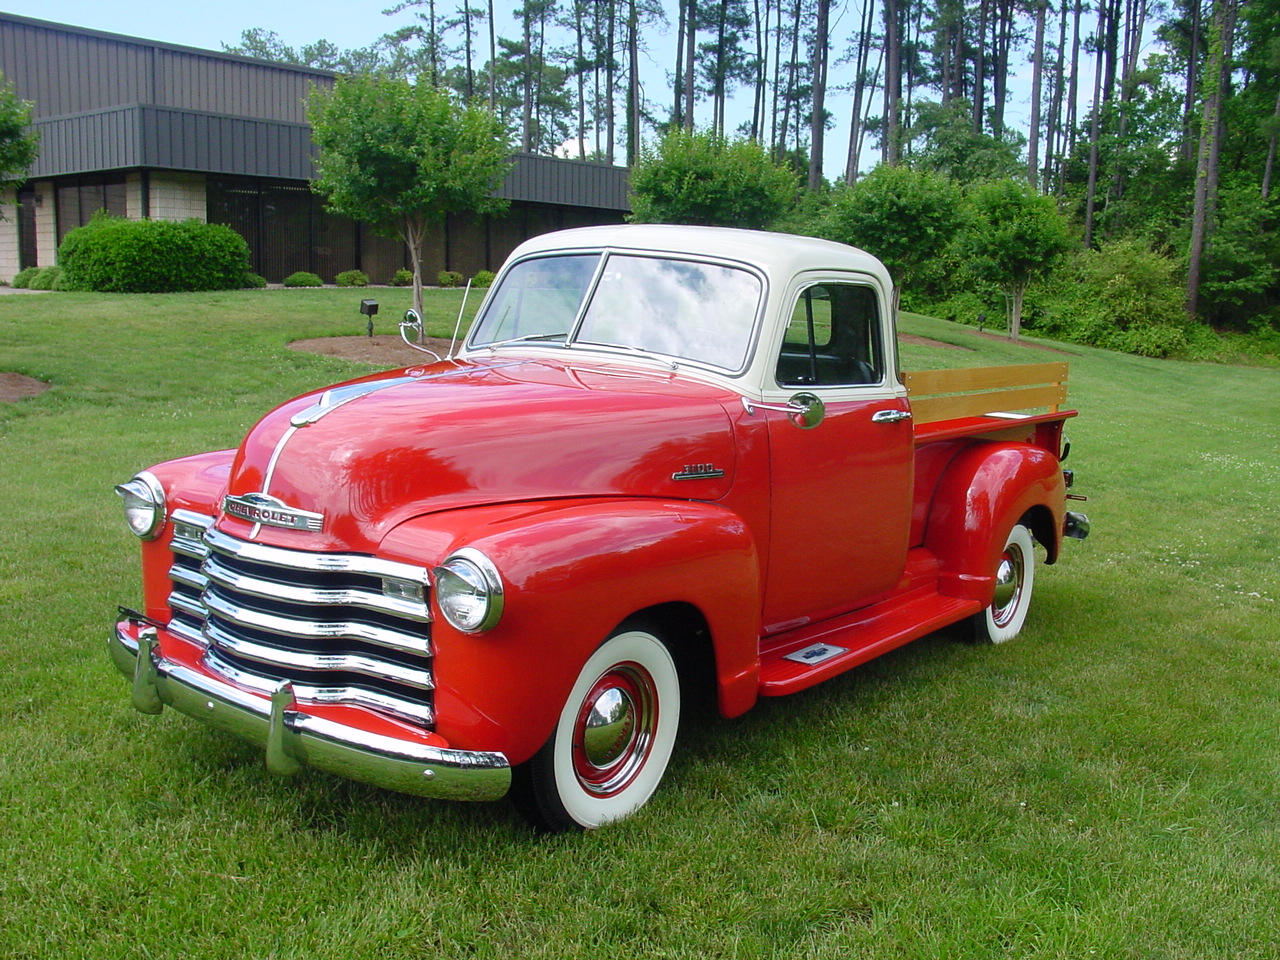 Picture of red 1950 Model of pickup truck-Chevrolet 3100